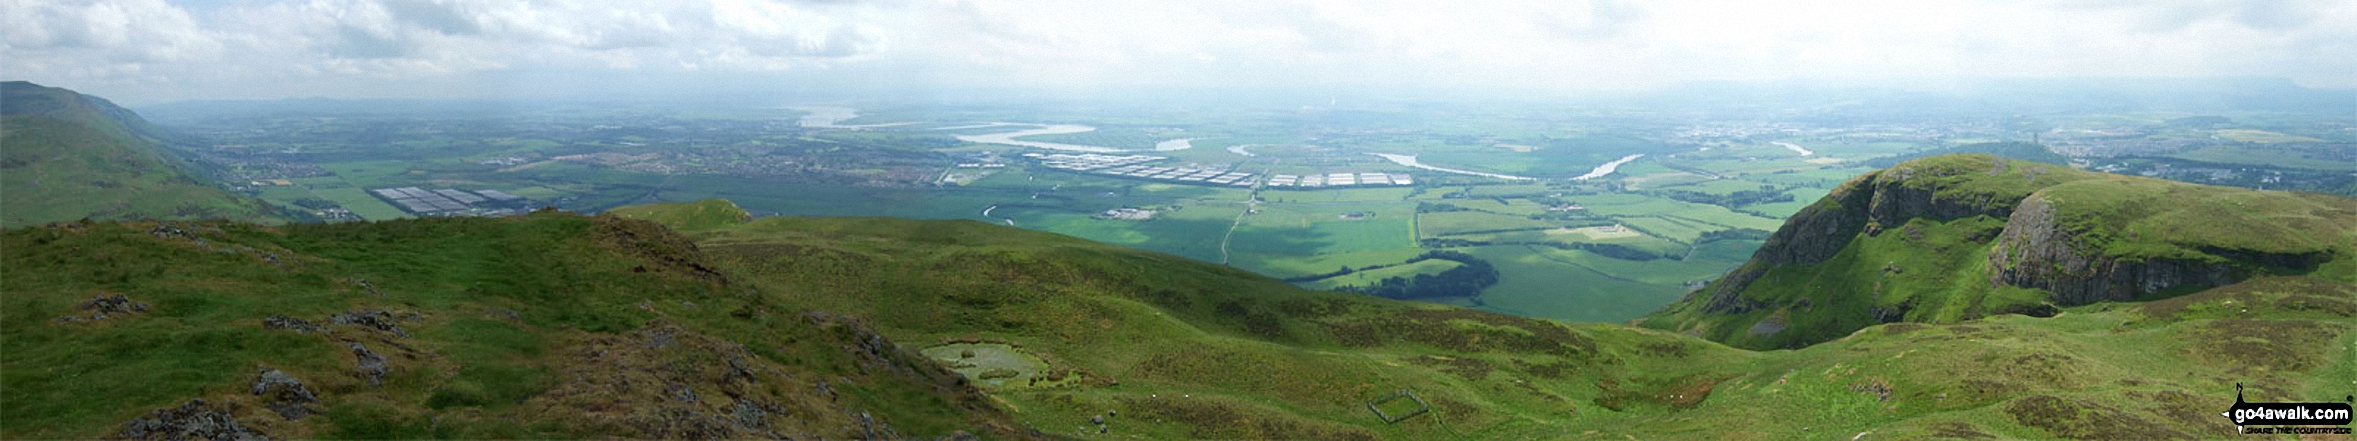 Bridge of Allan, Stirling, The Forth River and Alloa from the summit of Dumyat